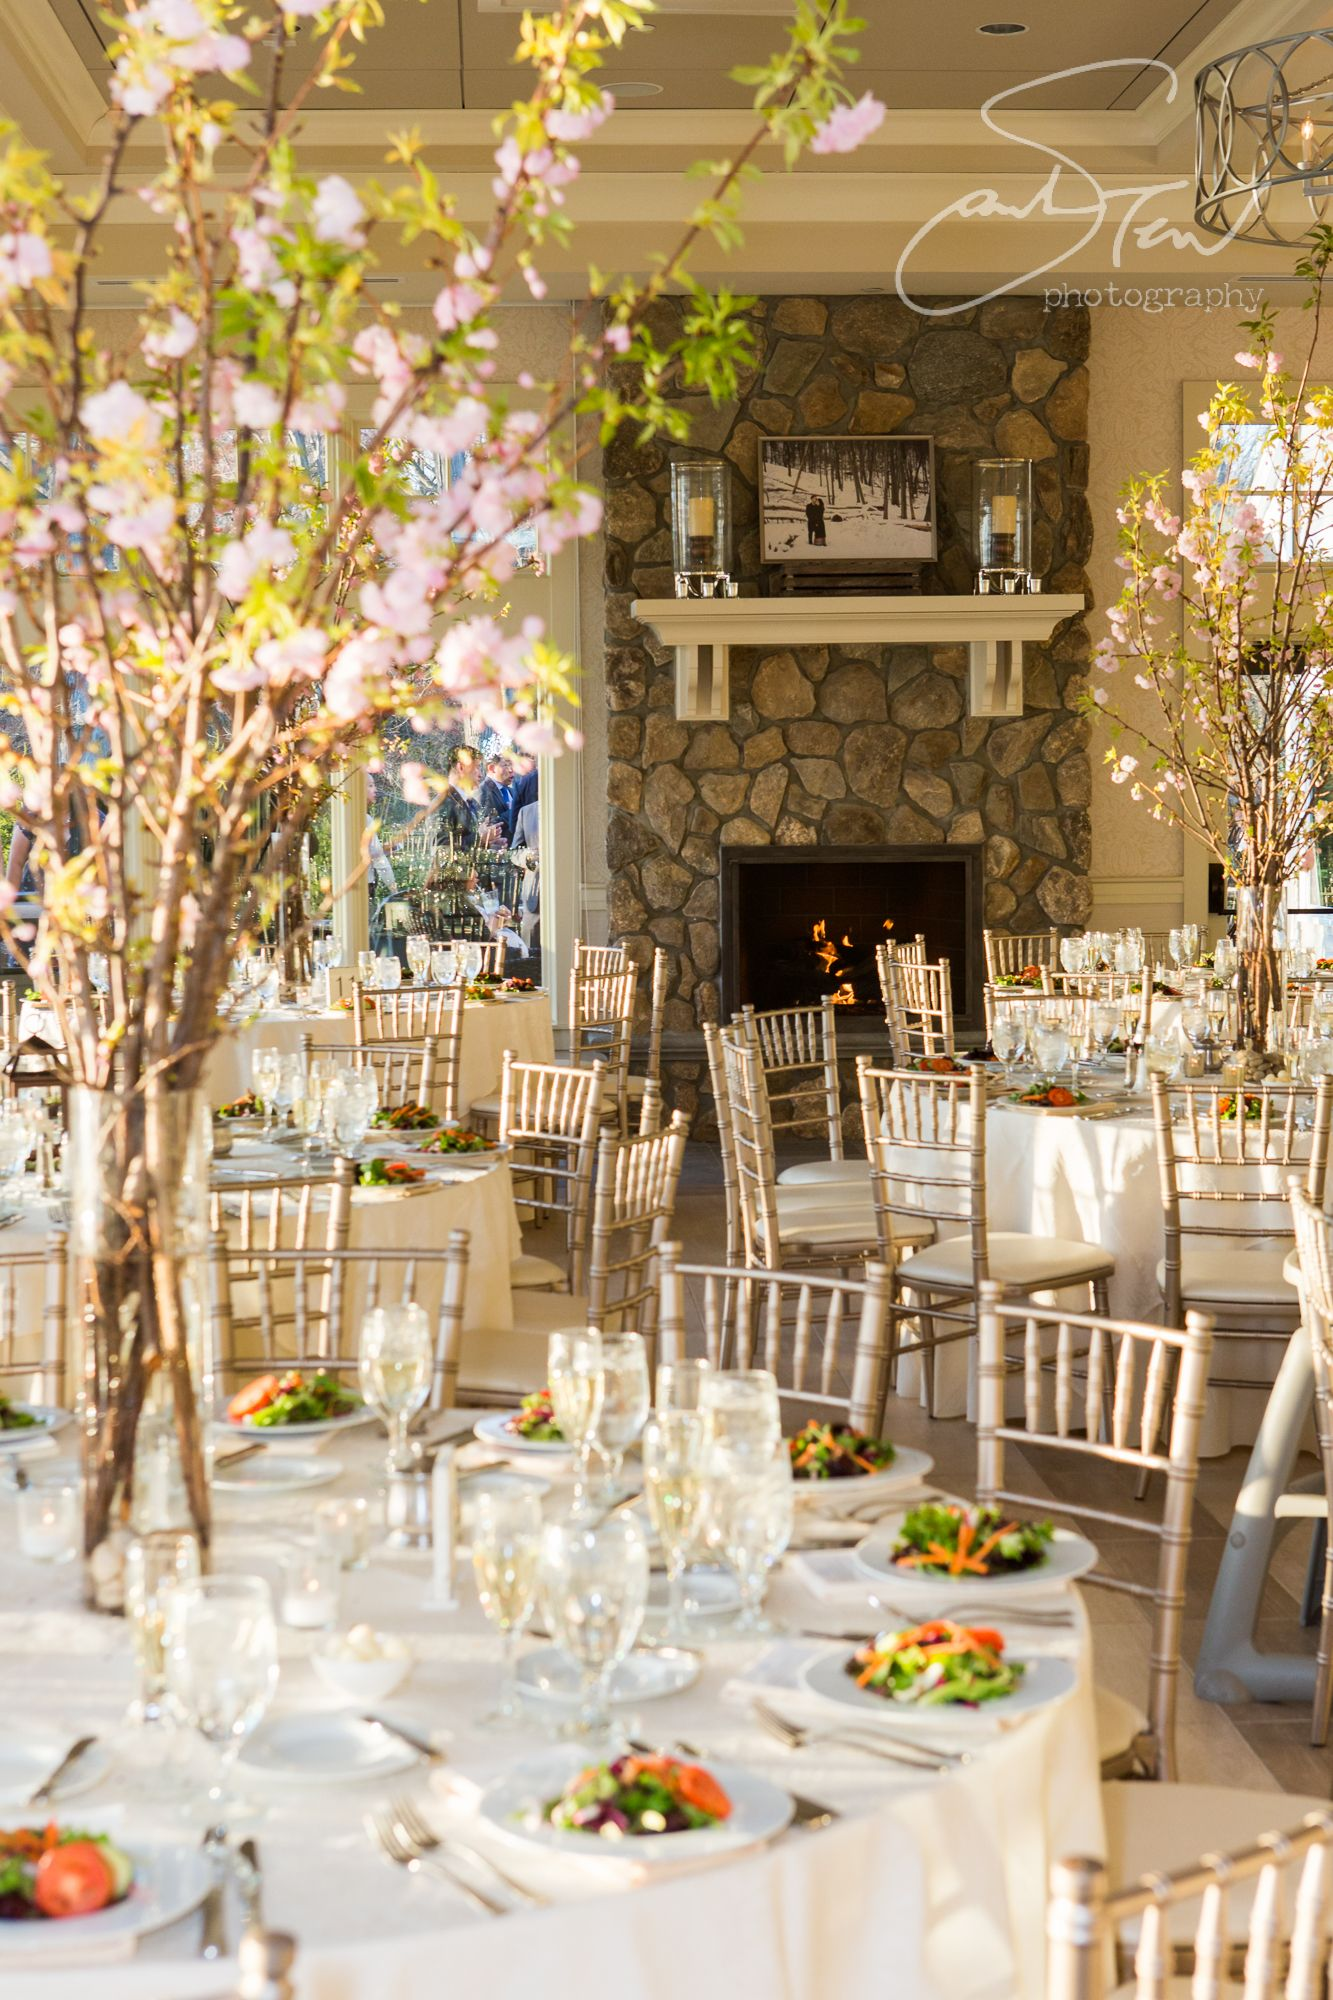 April Wedding At Indian Trail Club In New Jersey Sarah Tew Photography